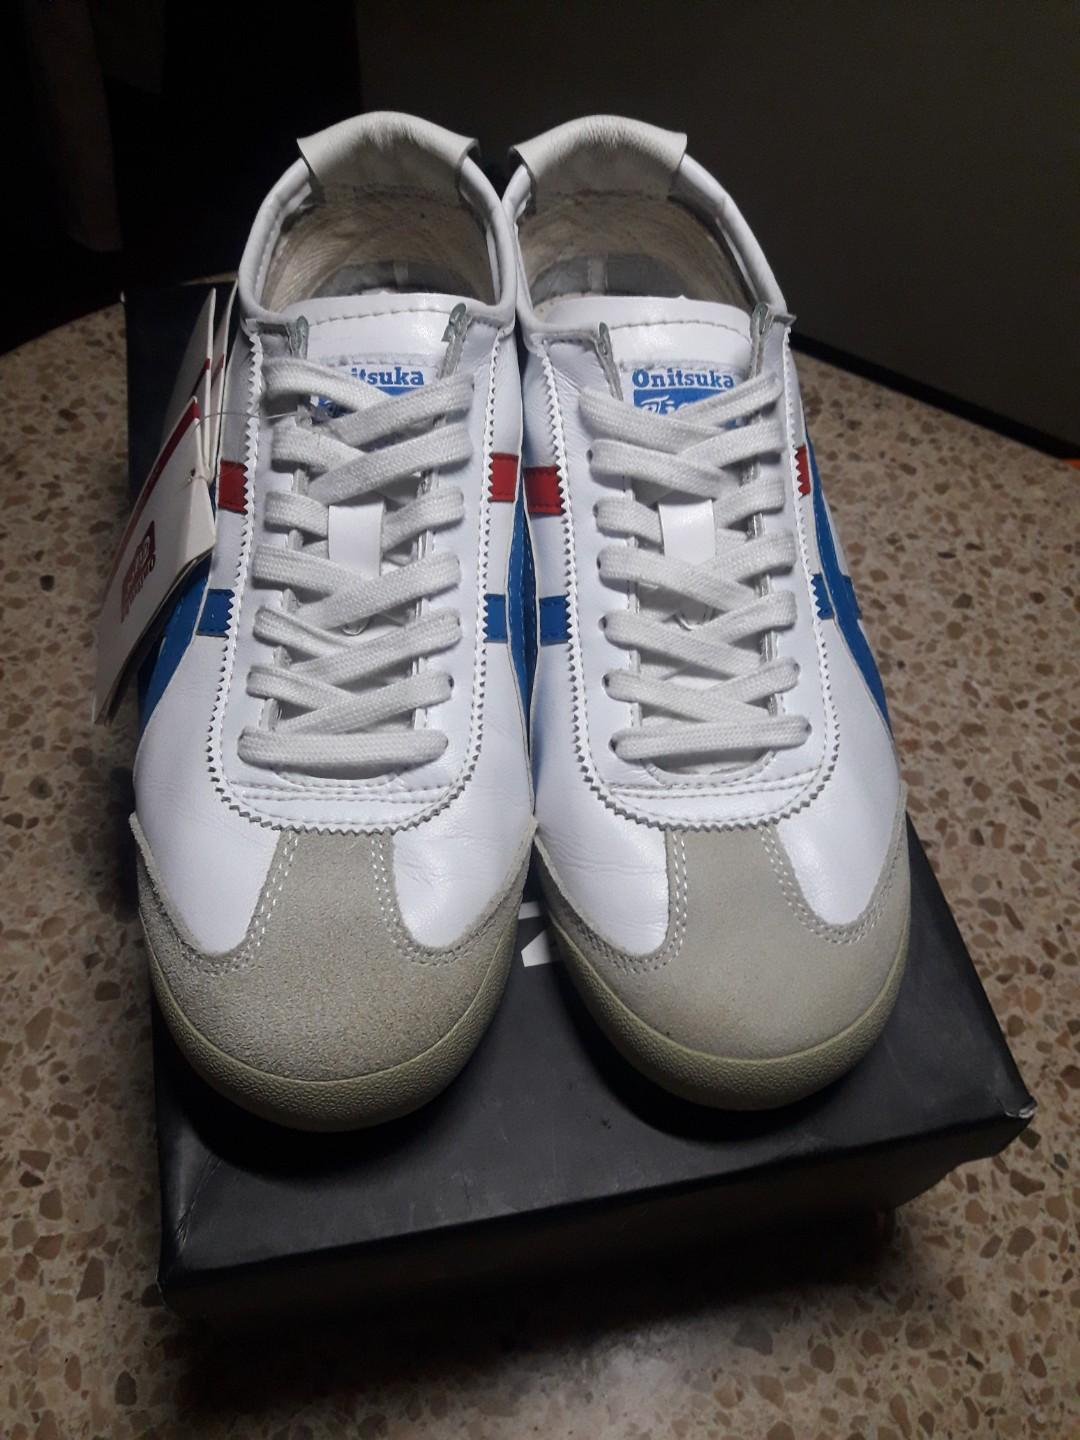 Classic Onitsuka Tiger Mexico 66 size 9.5US